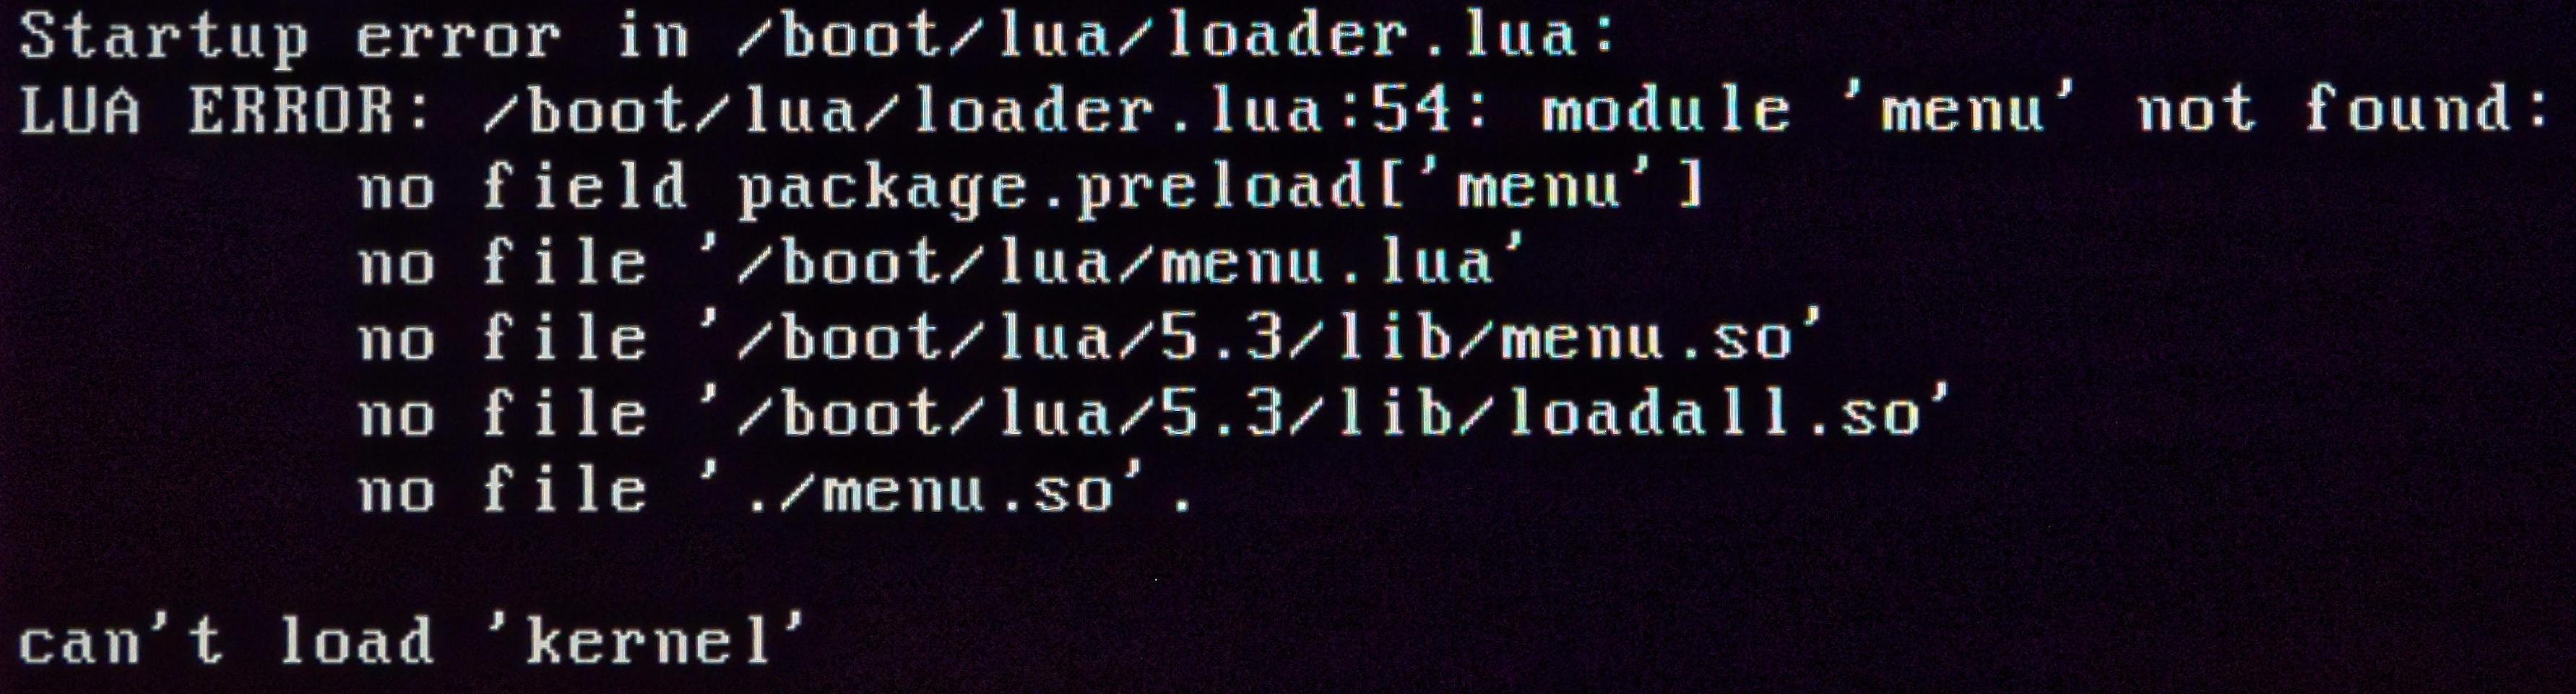 This should be Boot-fail-detail.jpeg.  Is it missing?